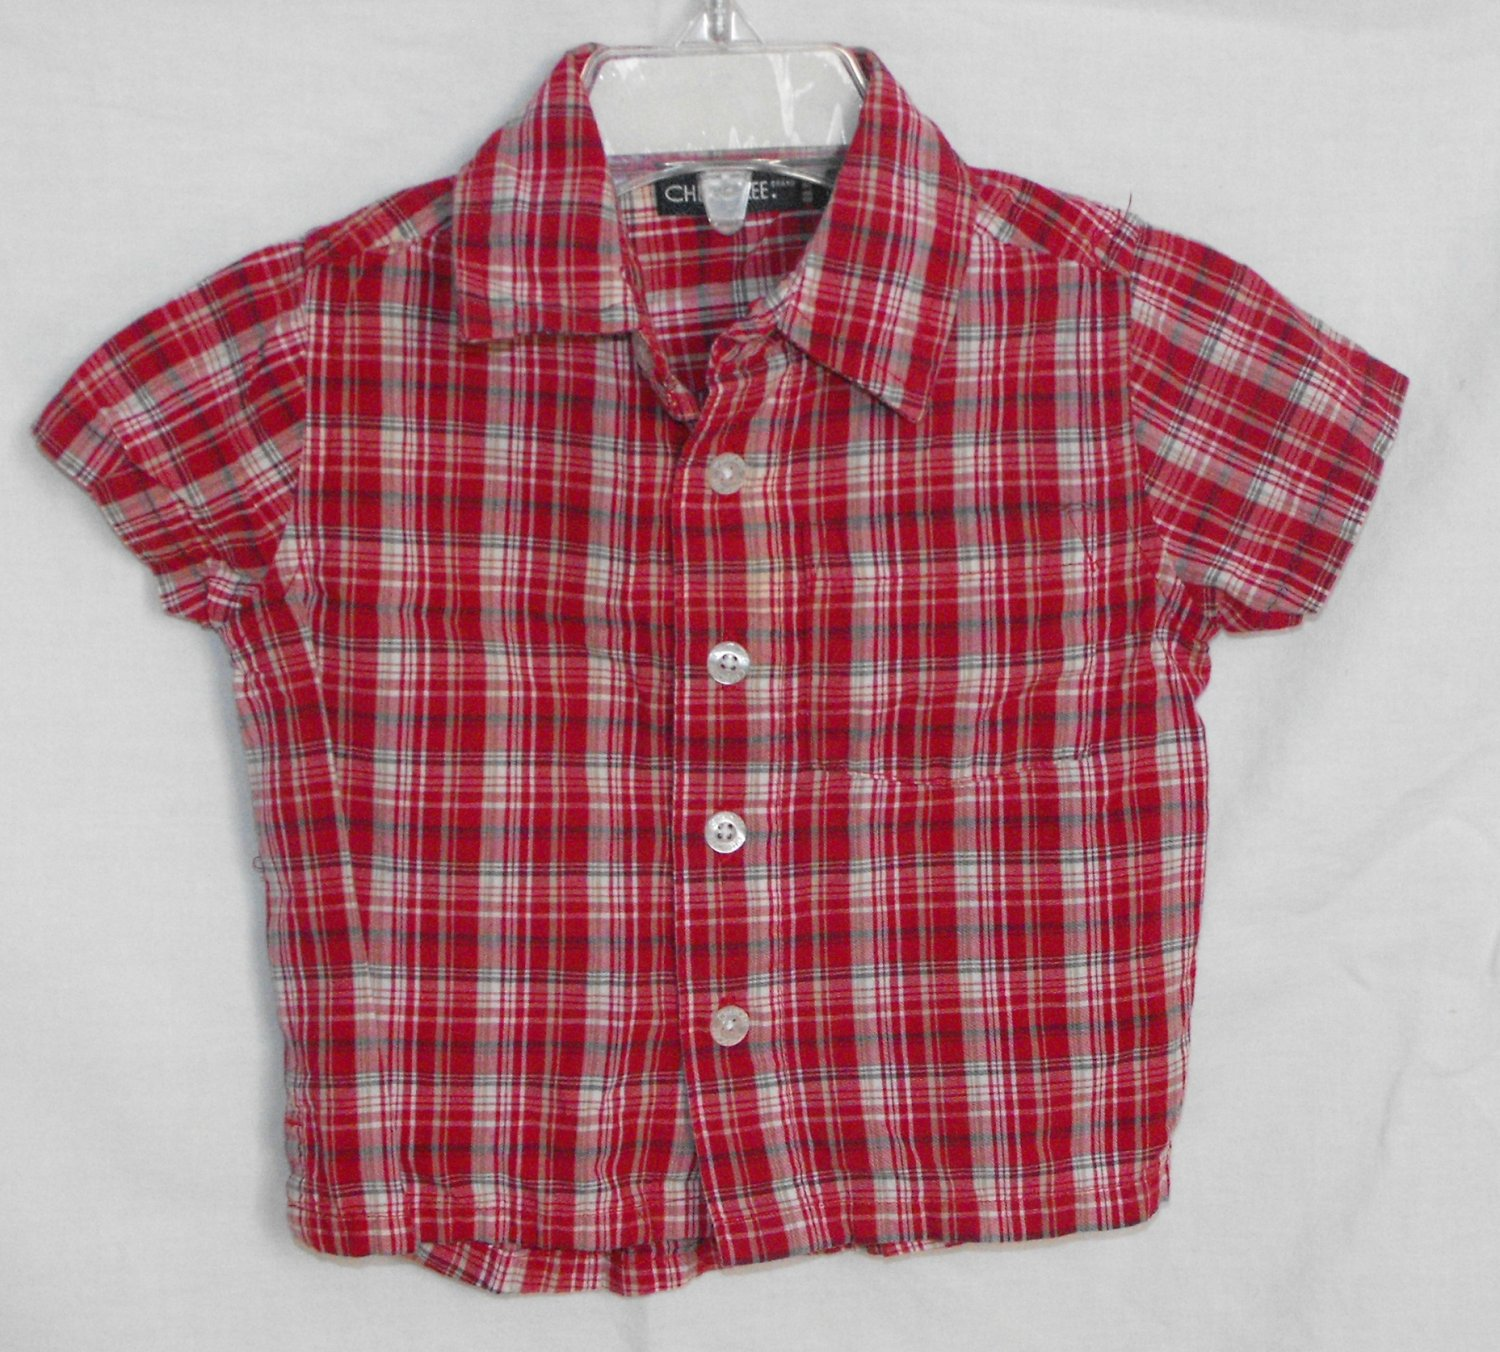 Cherokee Baby Red Plaid Button Up Short Sleeve Shirt 6 Months